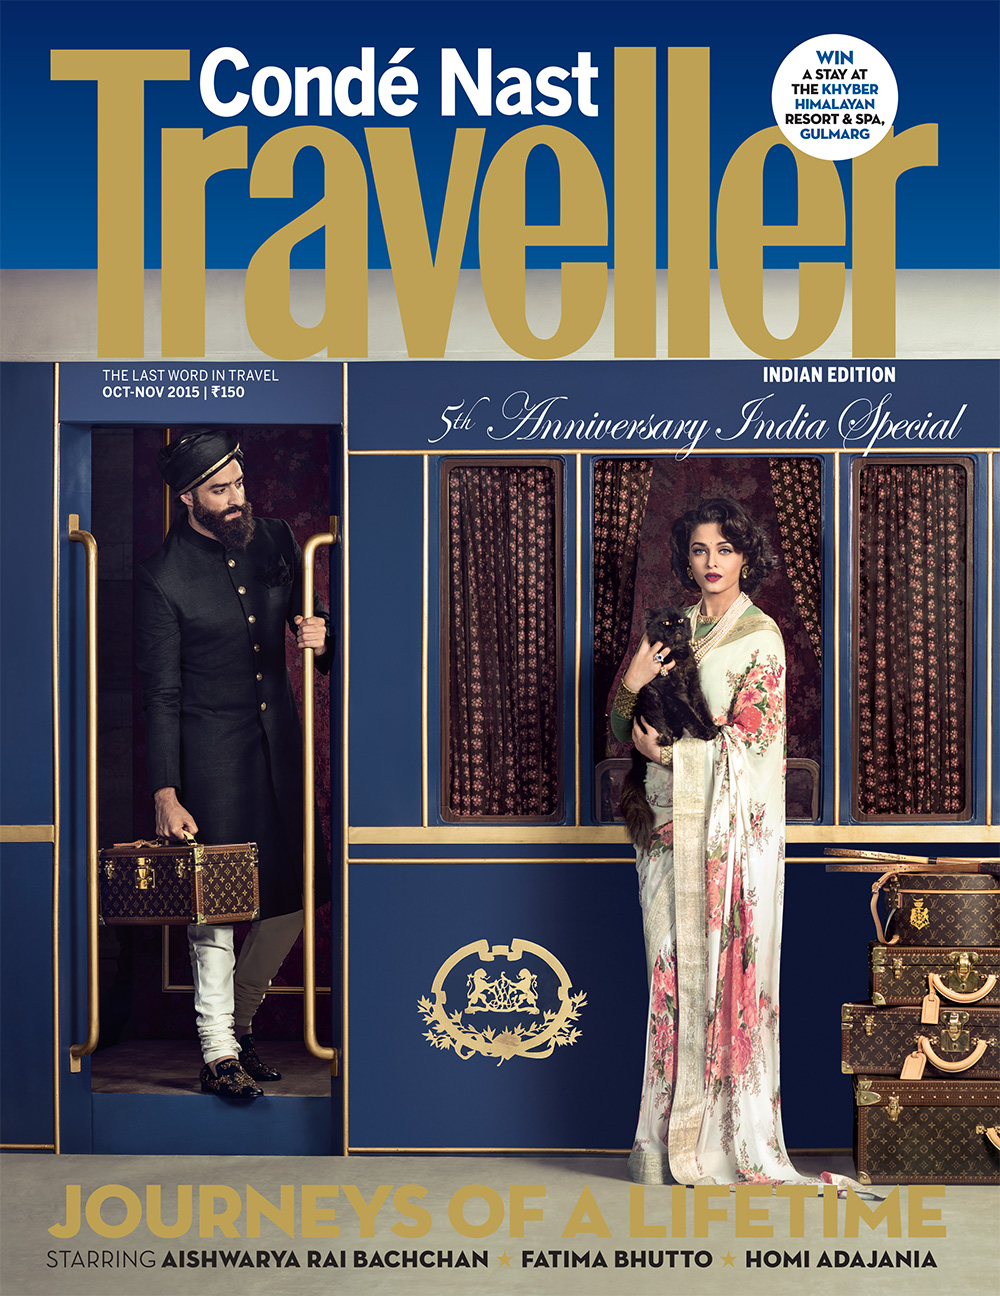 Condé Nast Traveller India: Two Articles